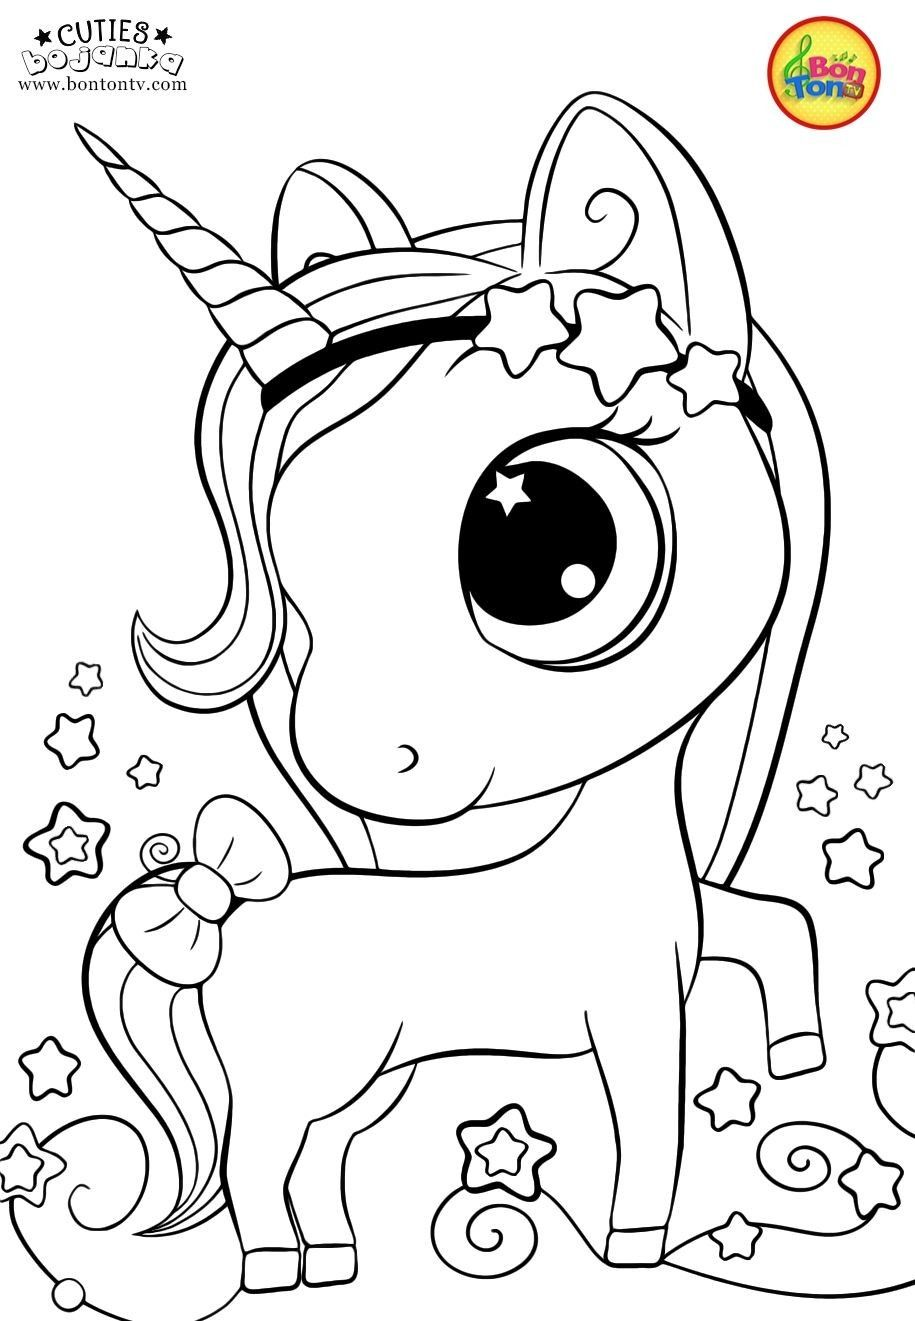 28++ Toy story coloring pages pdf ideas